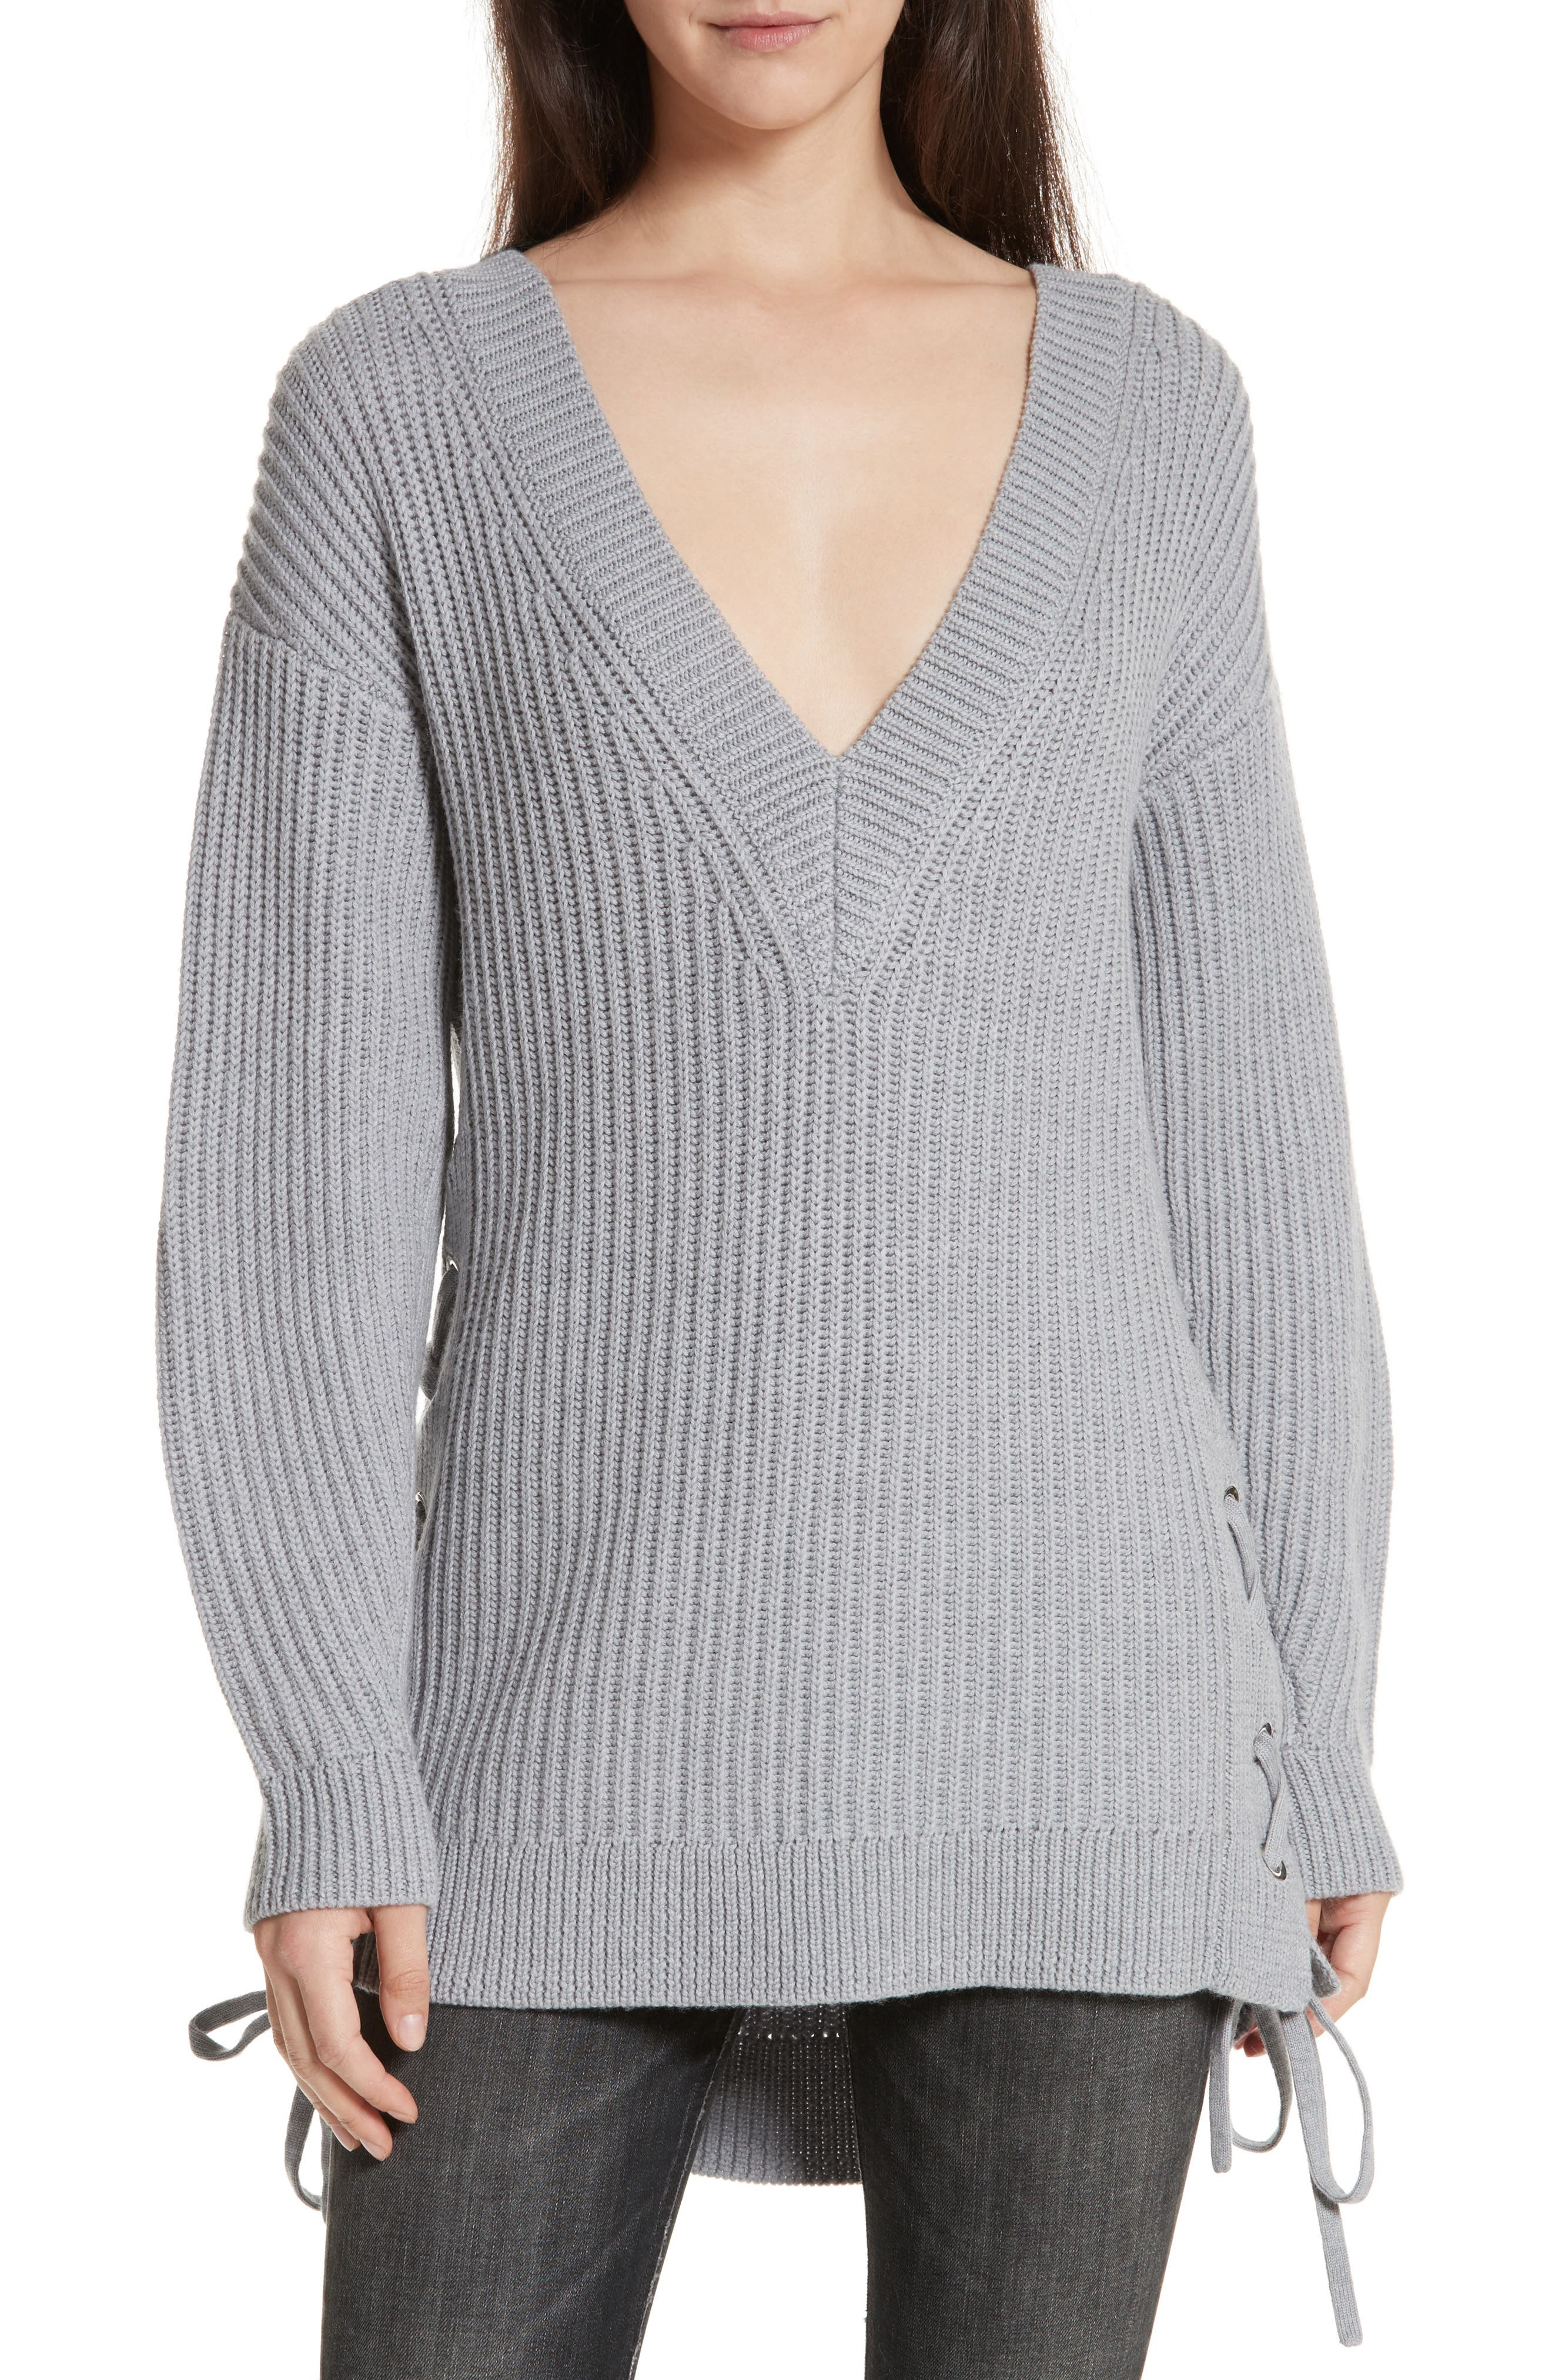 Alternate Image 1 Selected - rag & bone/JEAN Ivy Side Tie Sweater